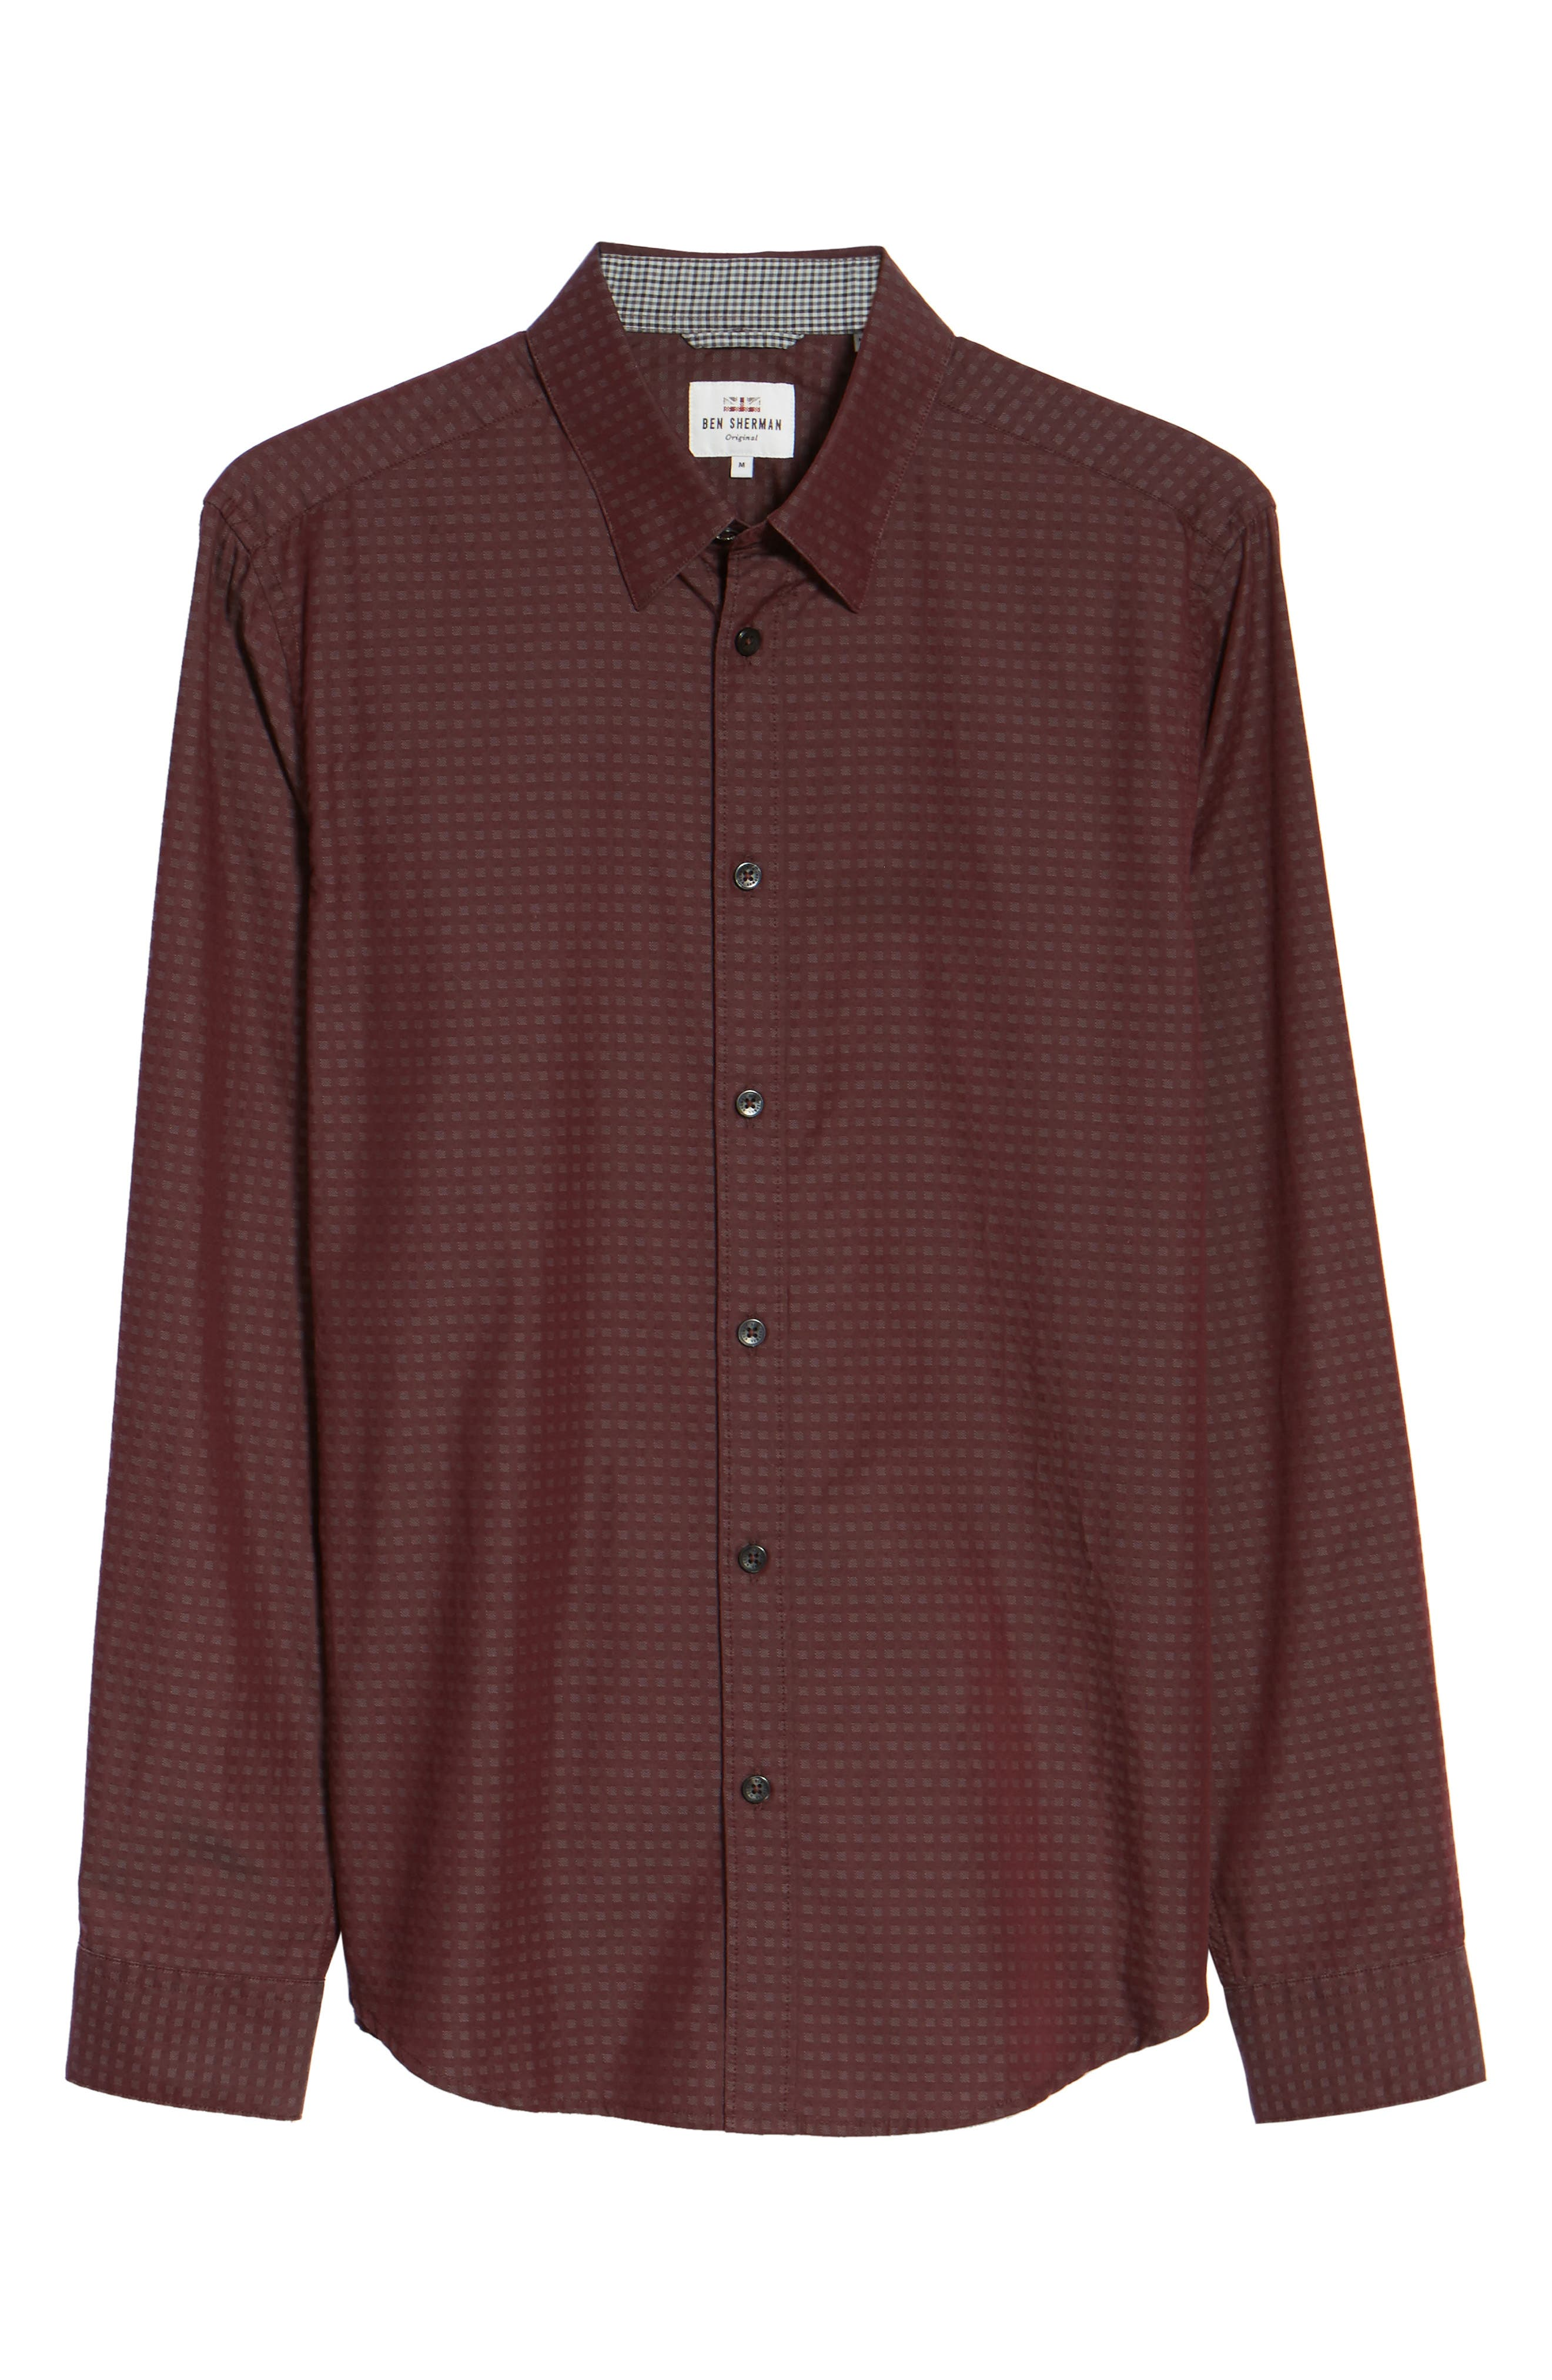 Dobby Checkerboard Woven Shirt,                             Alternate thumbnail 6, color,